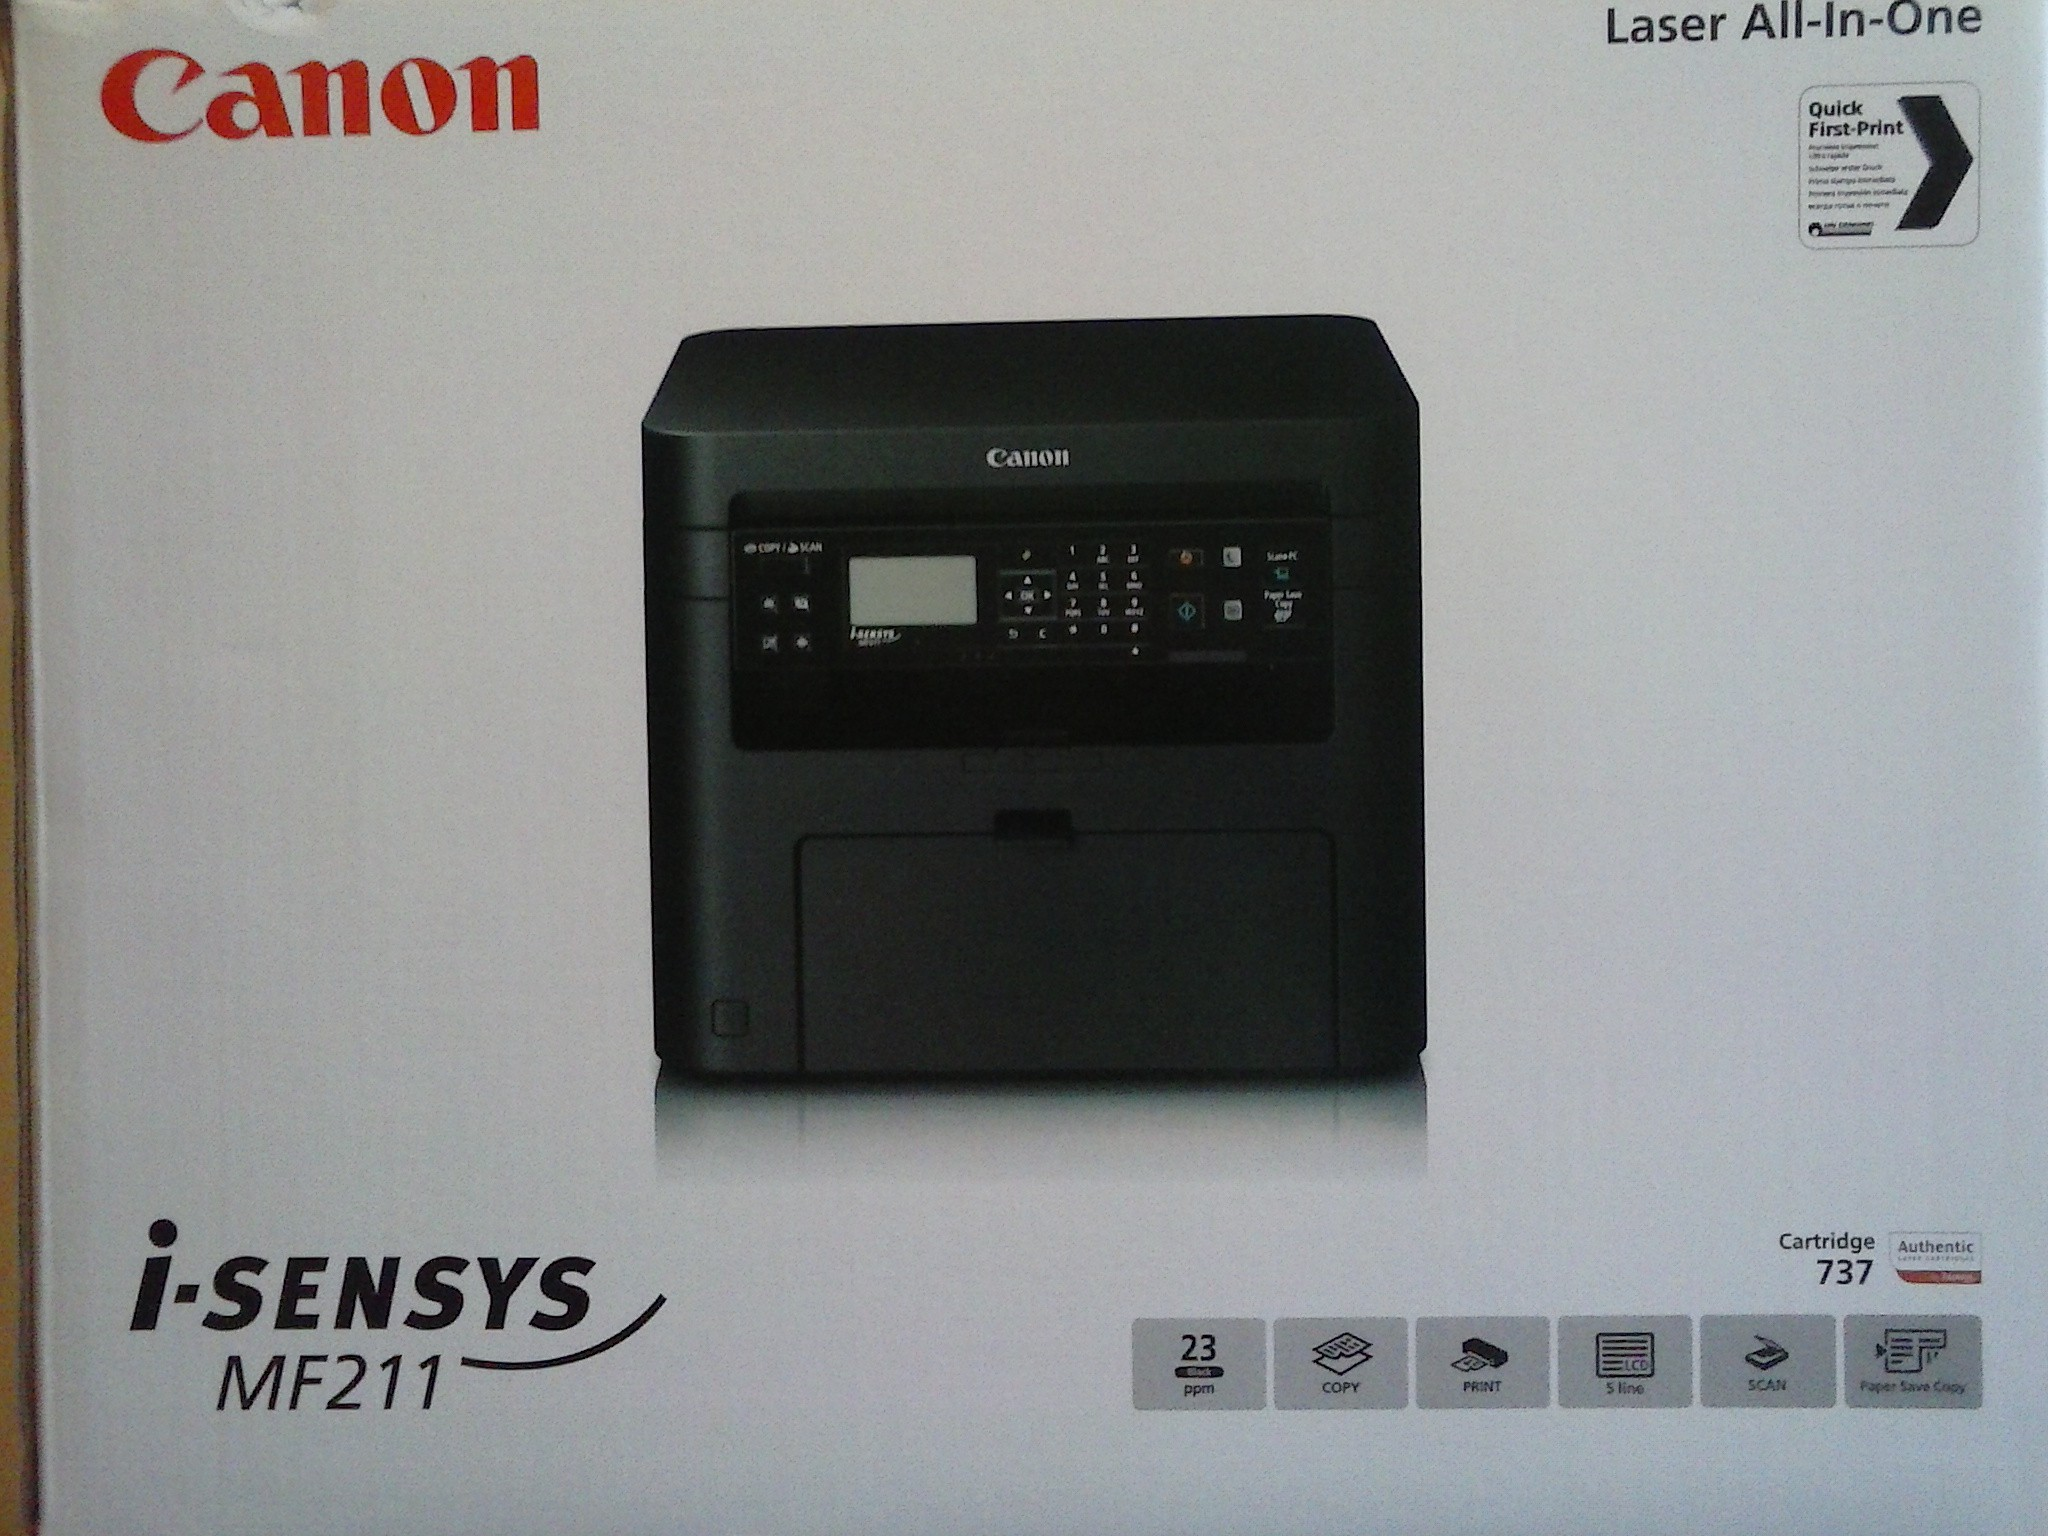 Canon i-sensys MF211 Laser ALL- In- One